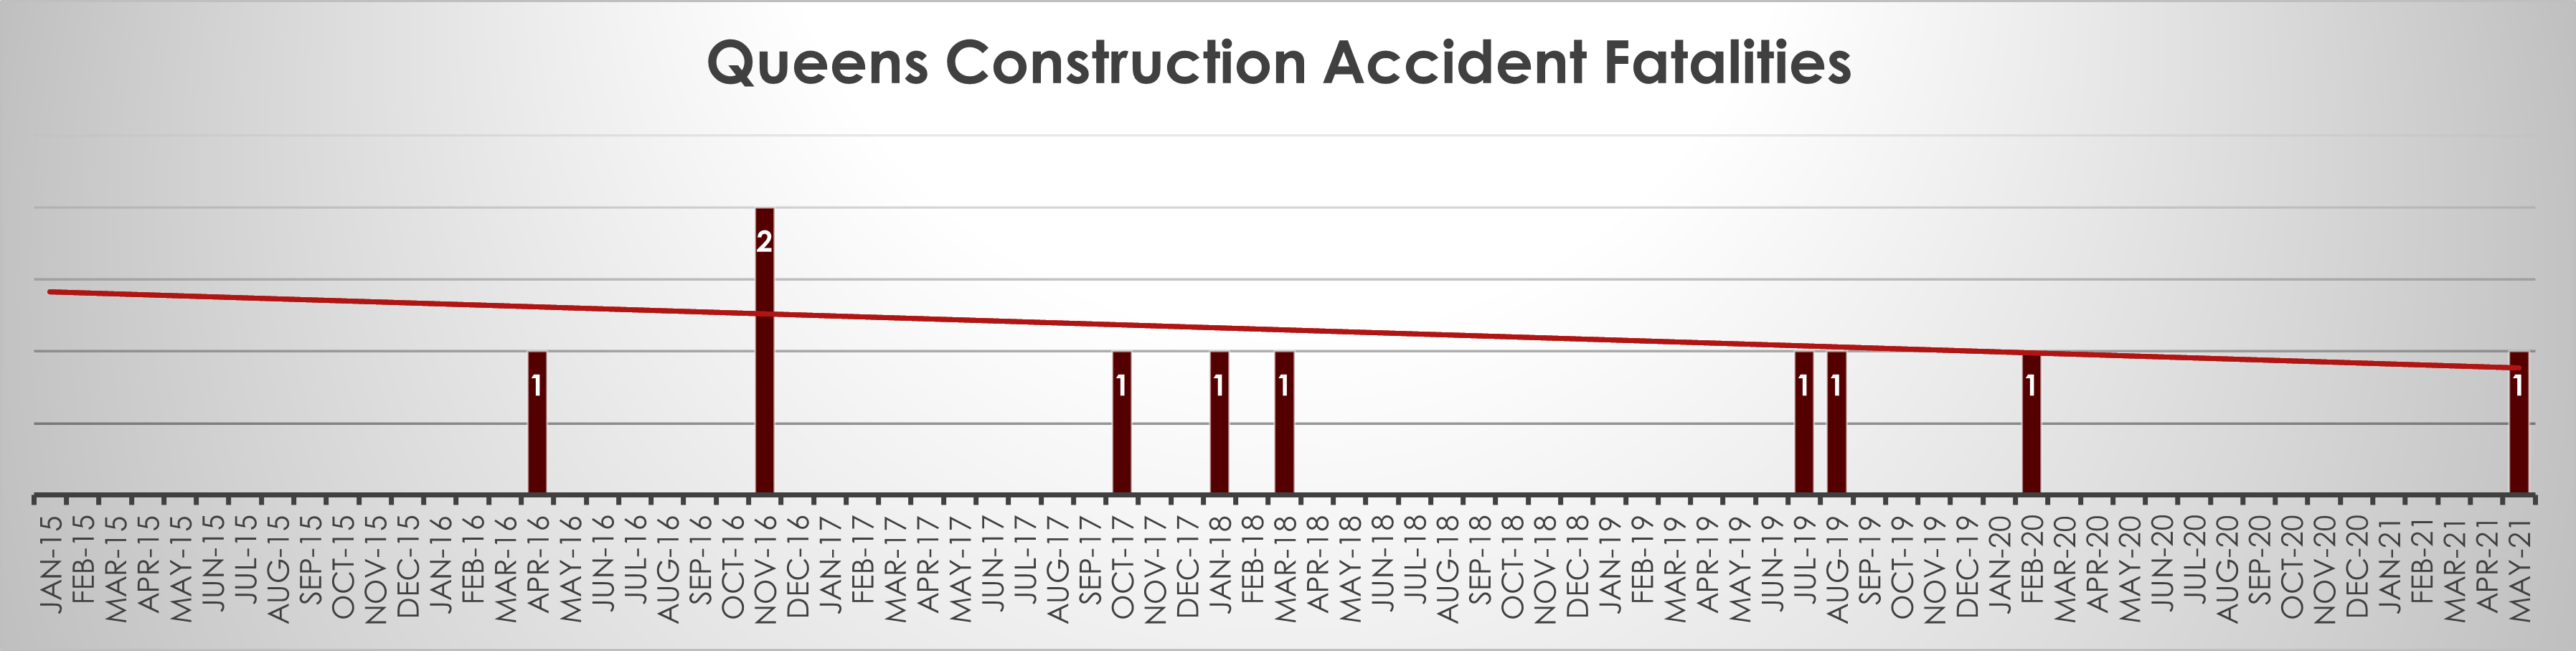 Queens-construction-accident-fatalitie-May-21